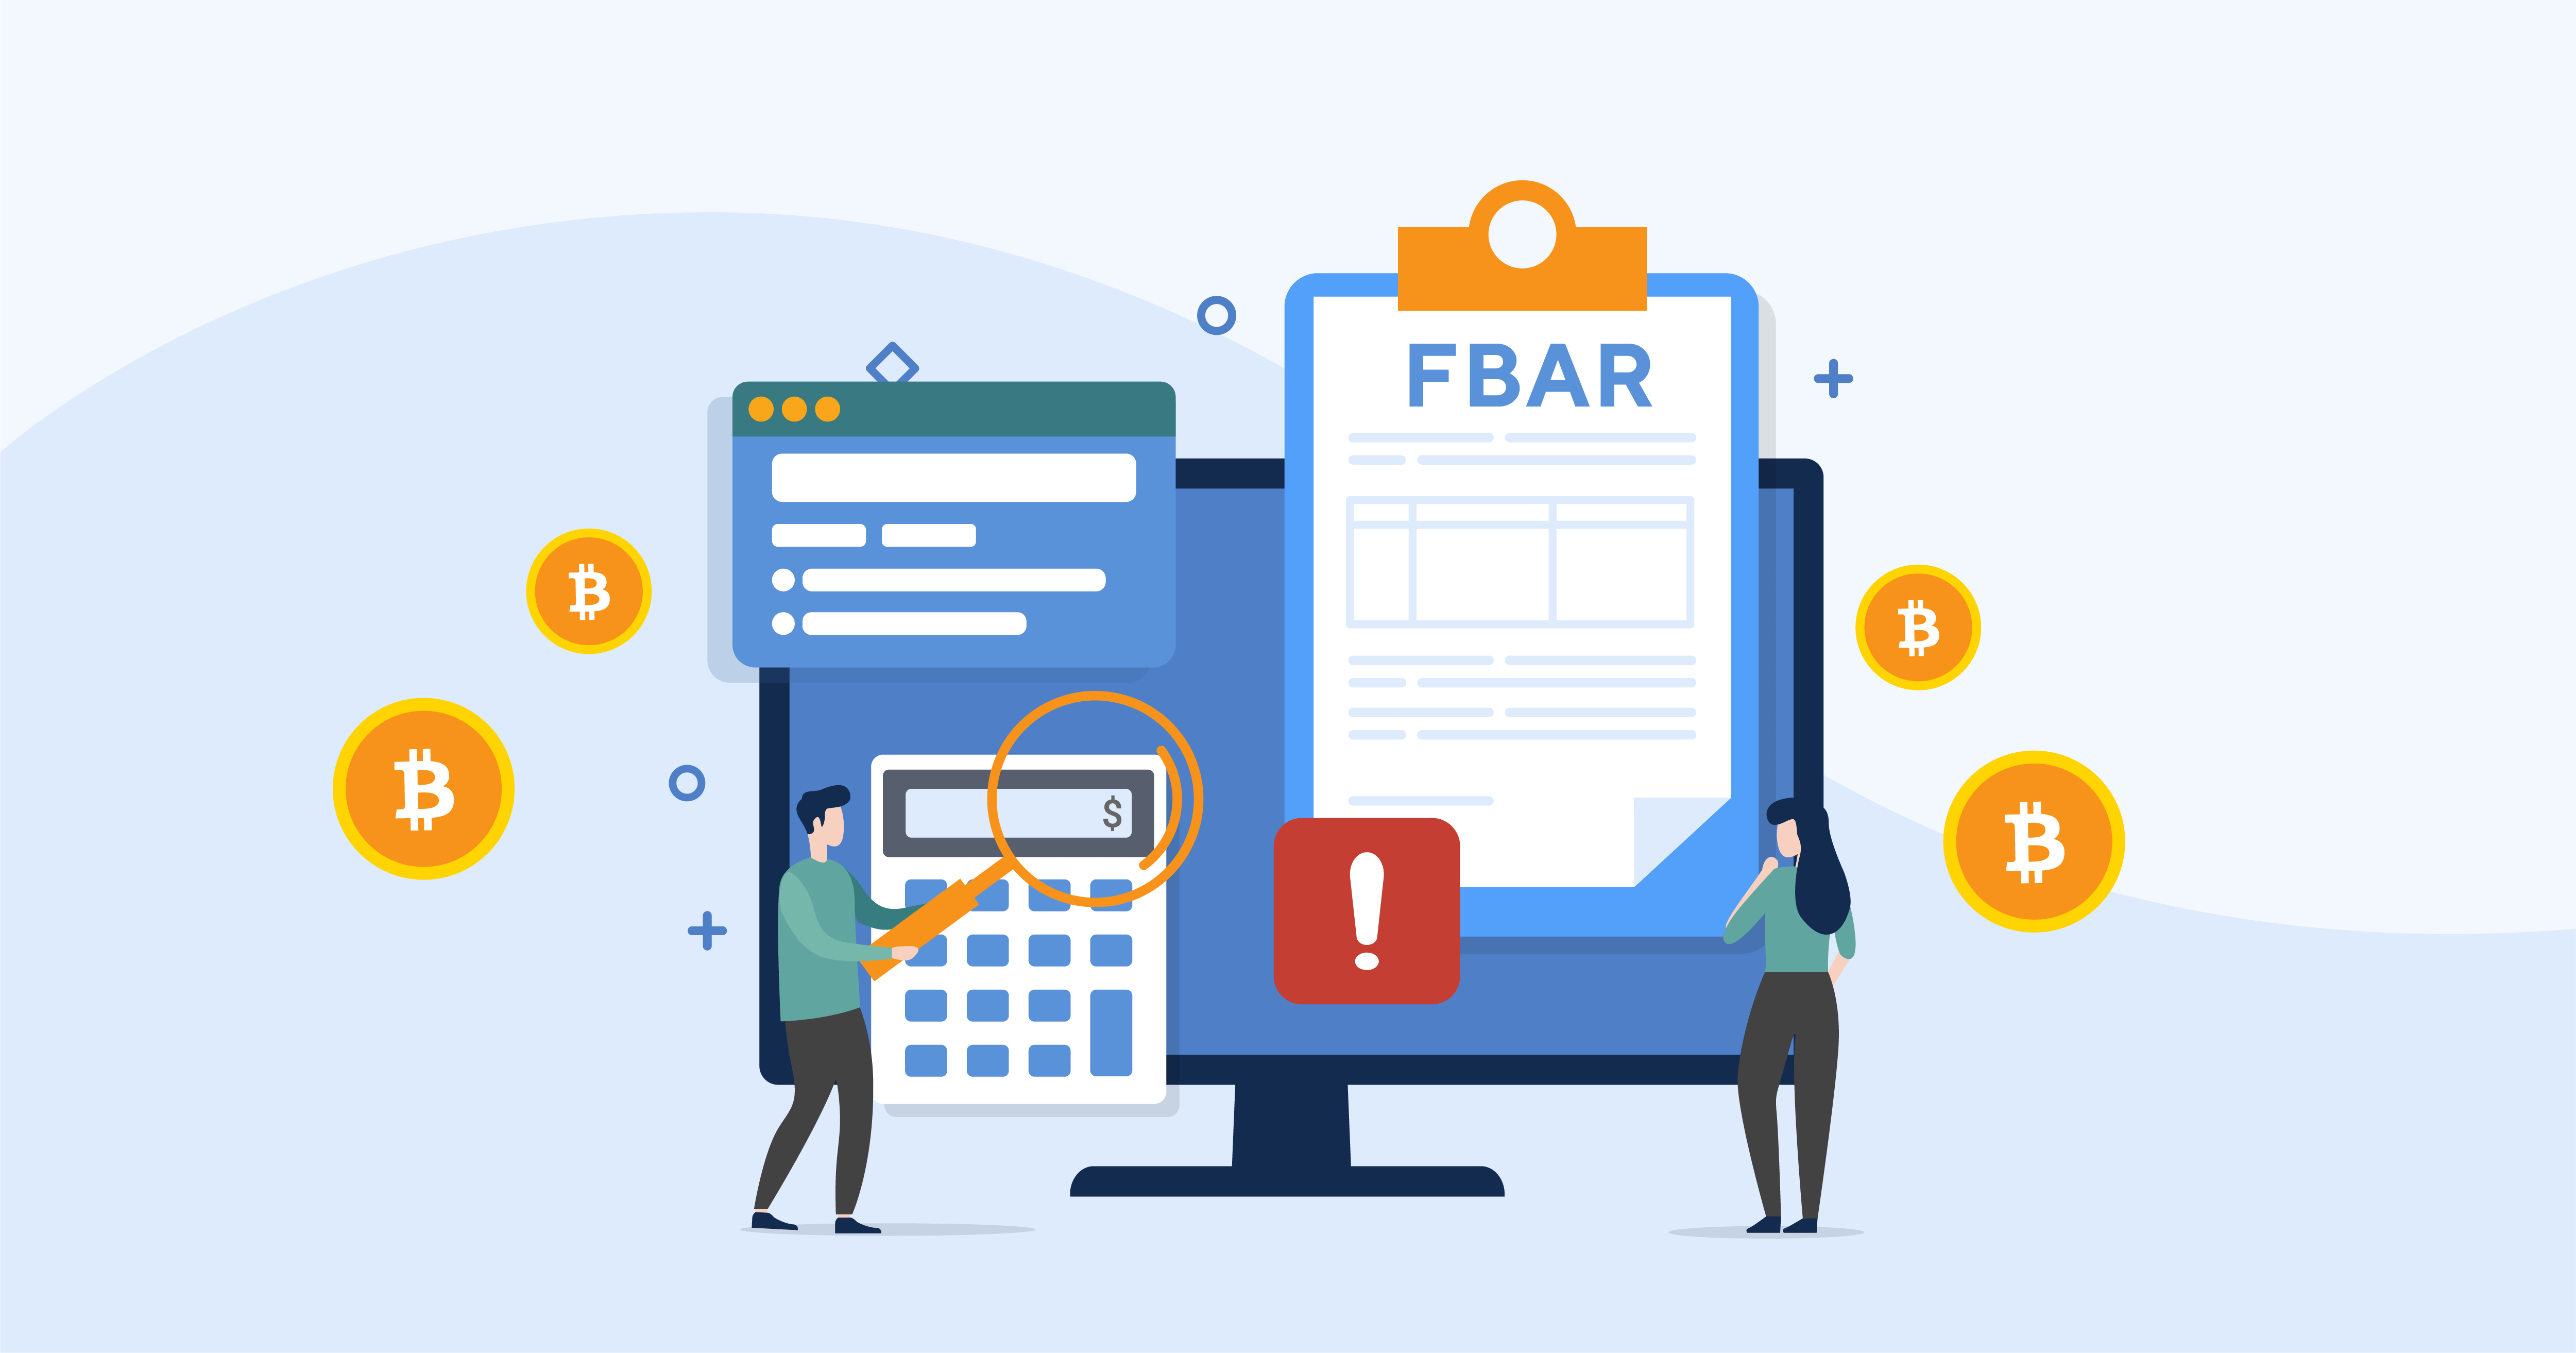 FBAR Reporting Requirements for Cryptocurrency